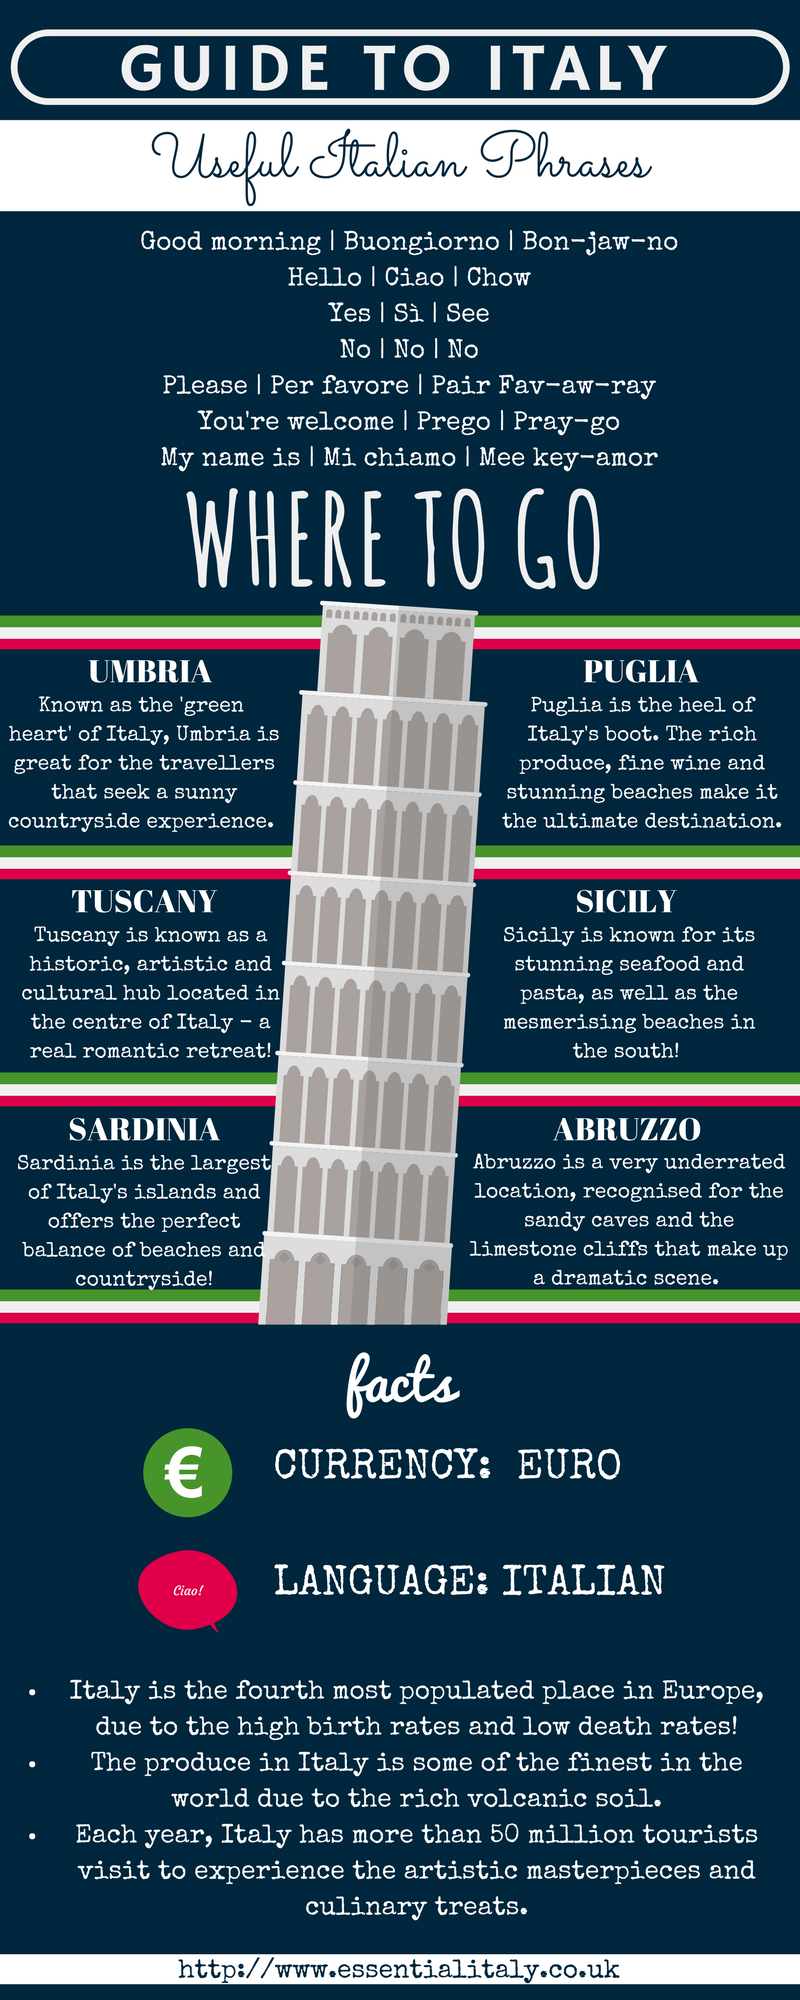 Guide to Italy infographic